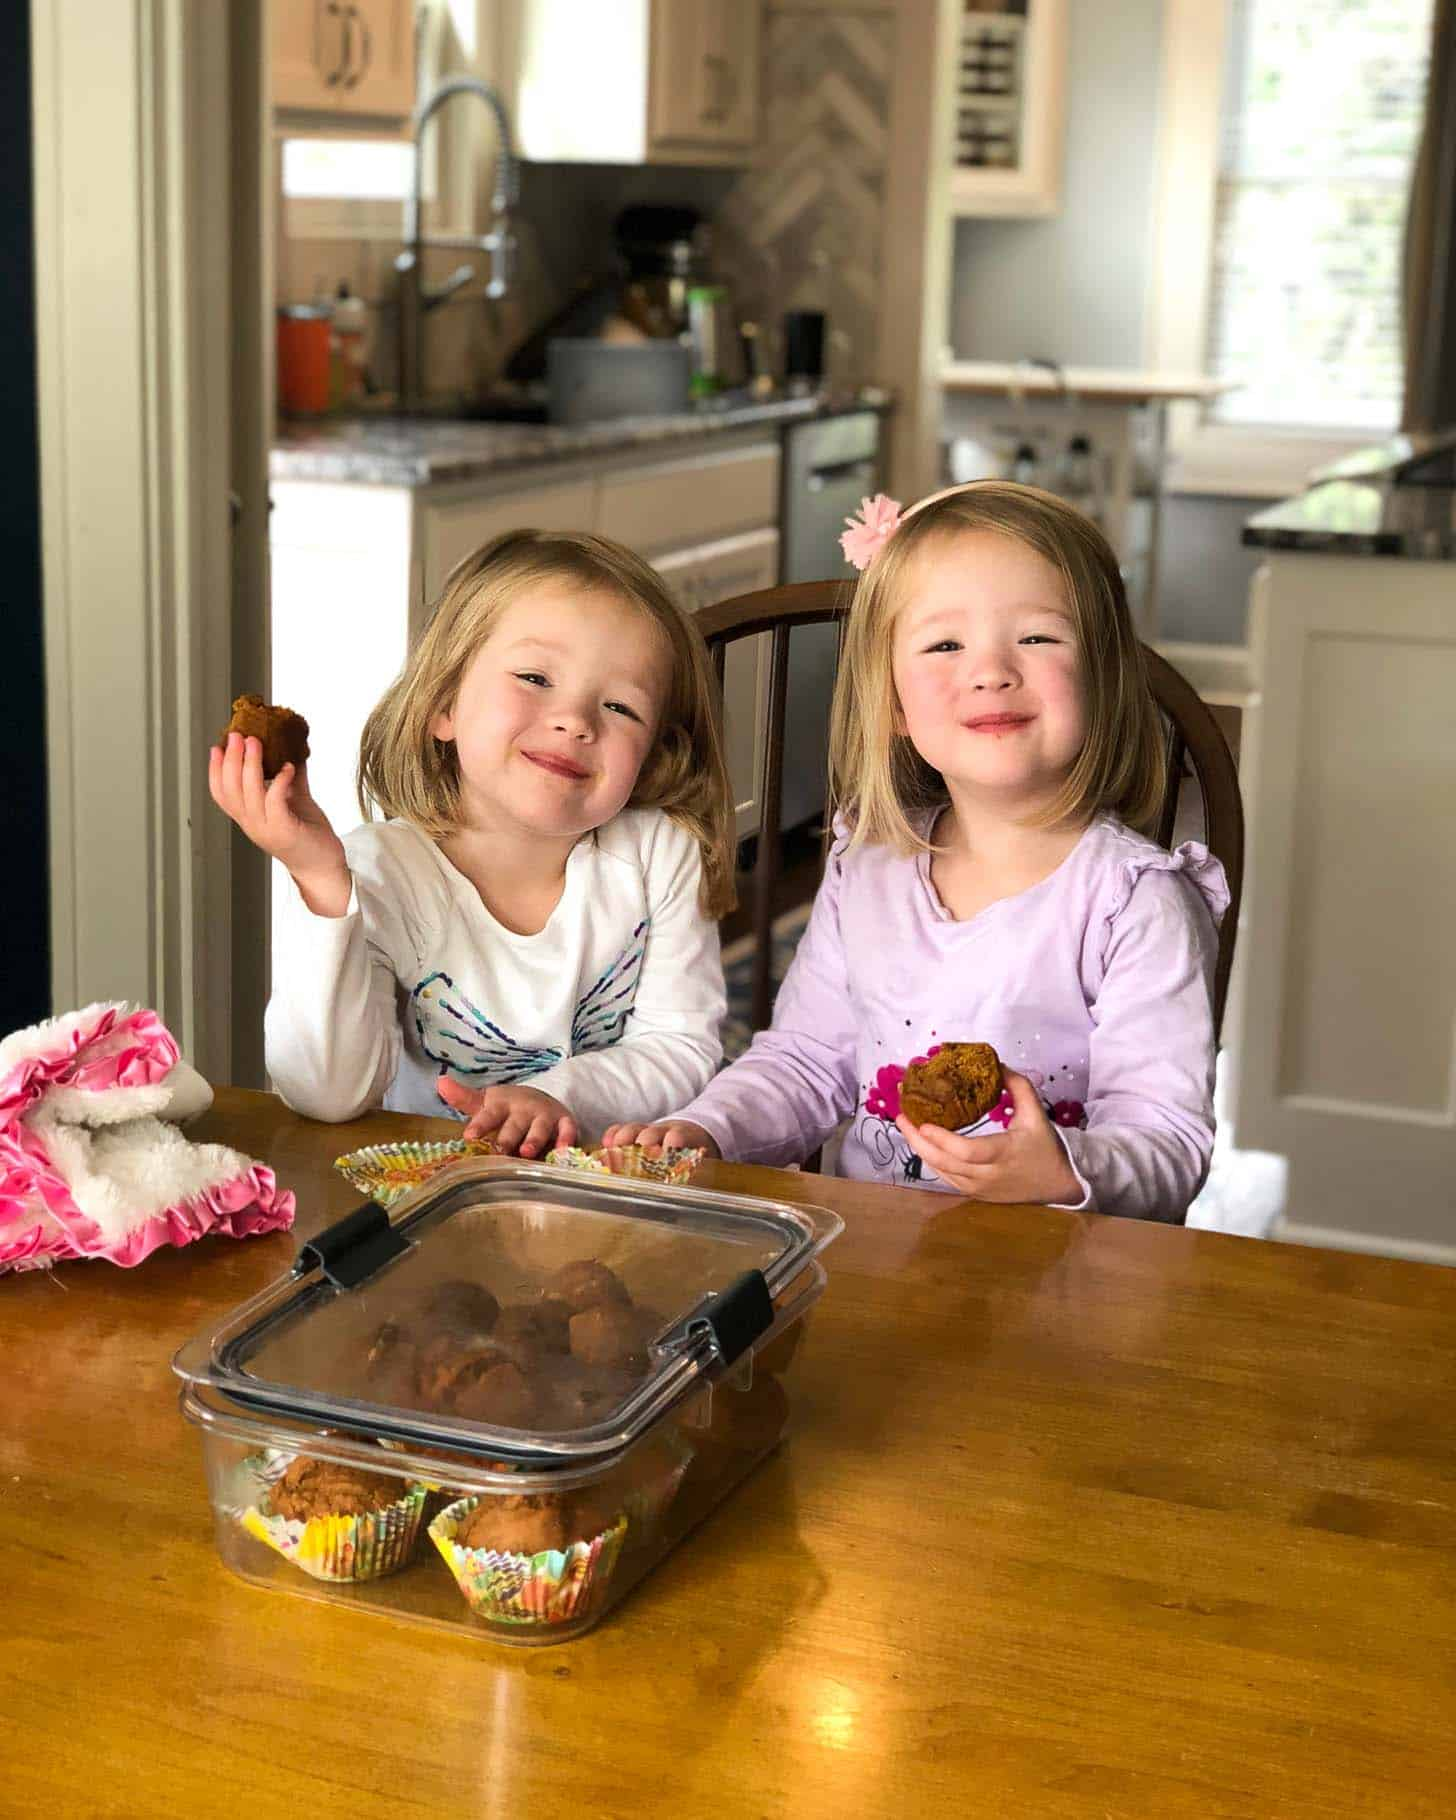 two little girls at a table eating muffins